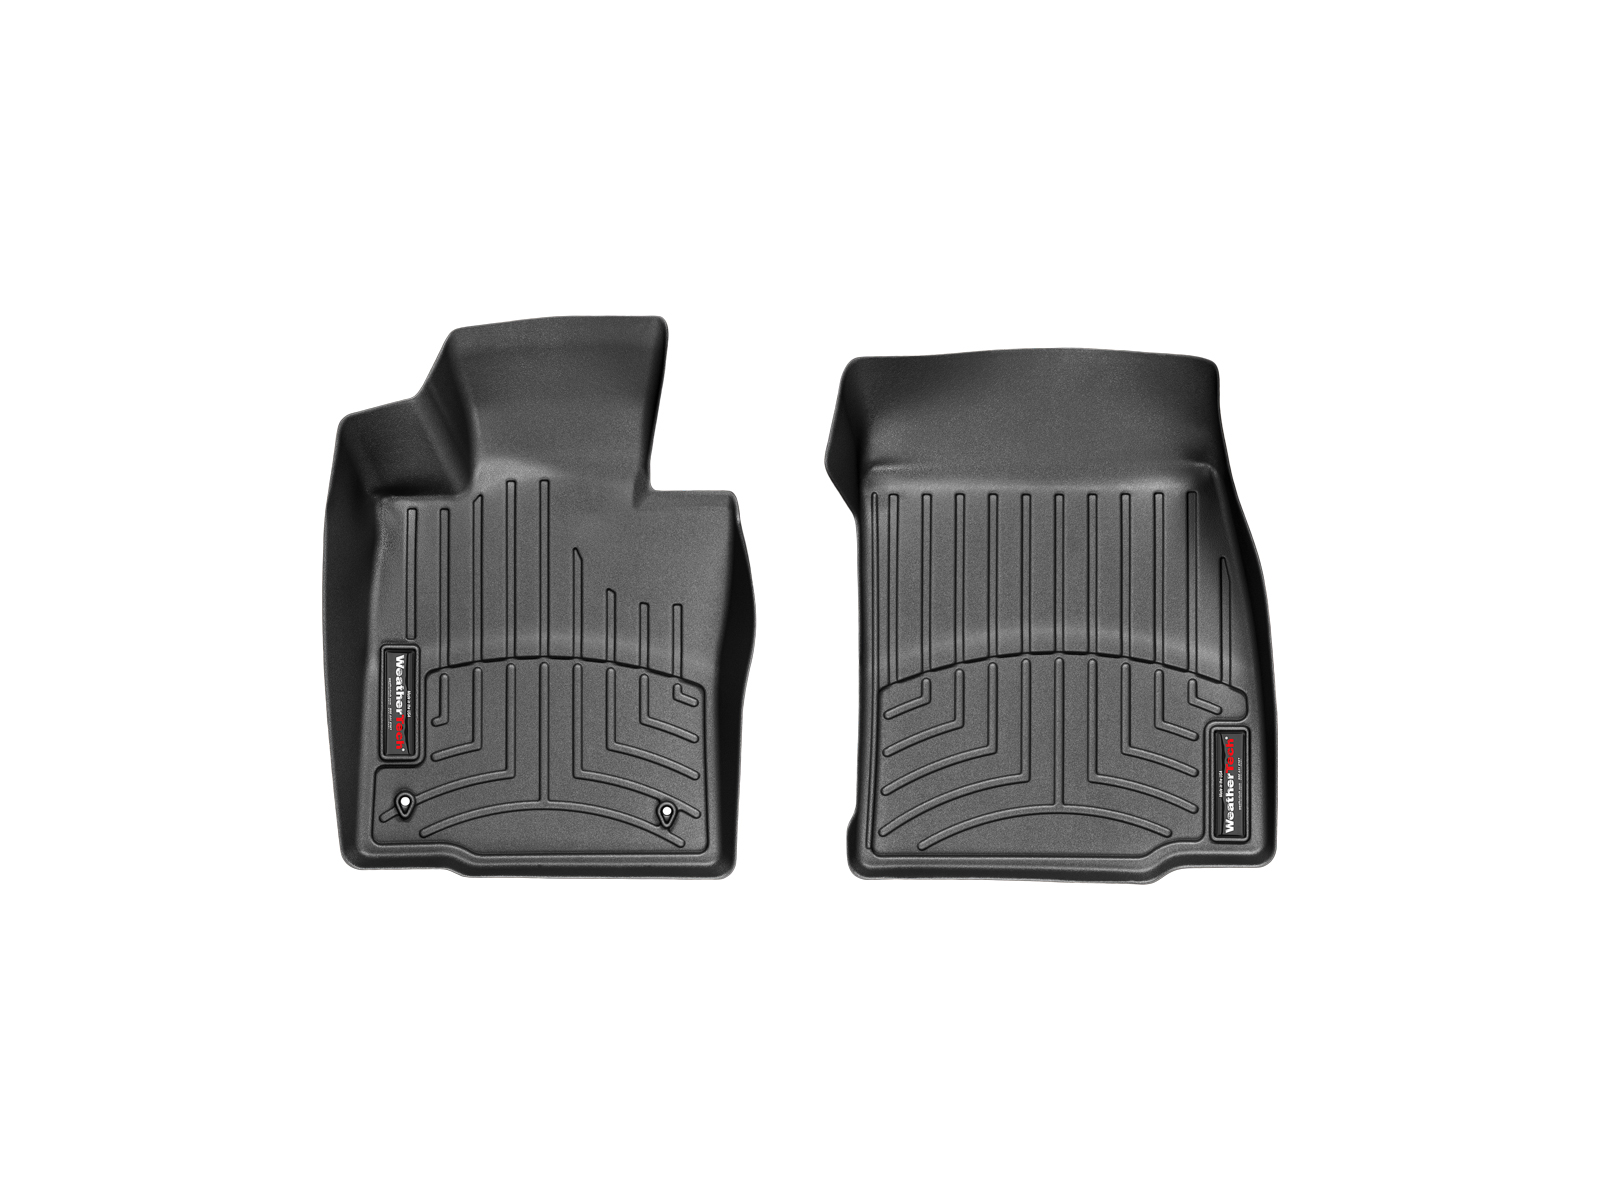 Tappeti gomma Weathertech bordo alto MINI Countryman 17>17 Nero A2699